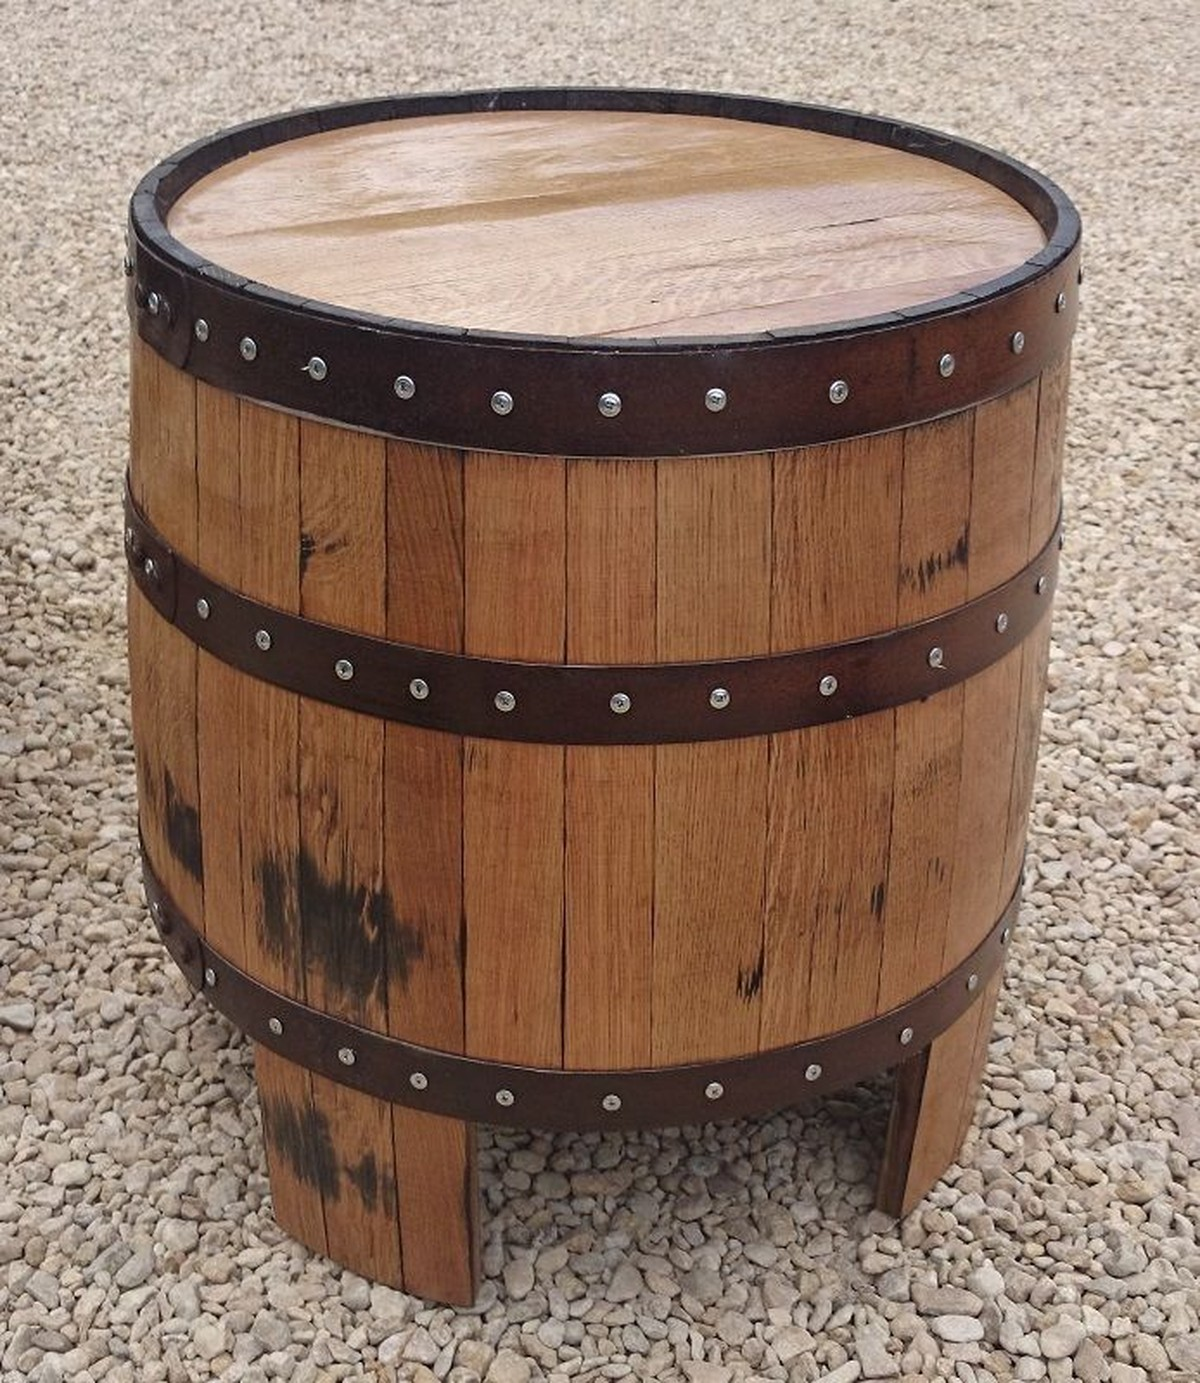 whiskey barrel pub table and chairs big joe lumin chair multiple colors secondhand equipment beer garden furniture nessie